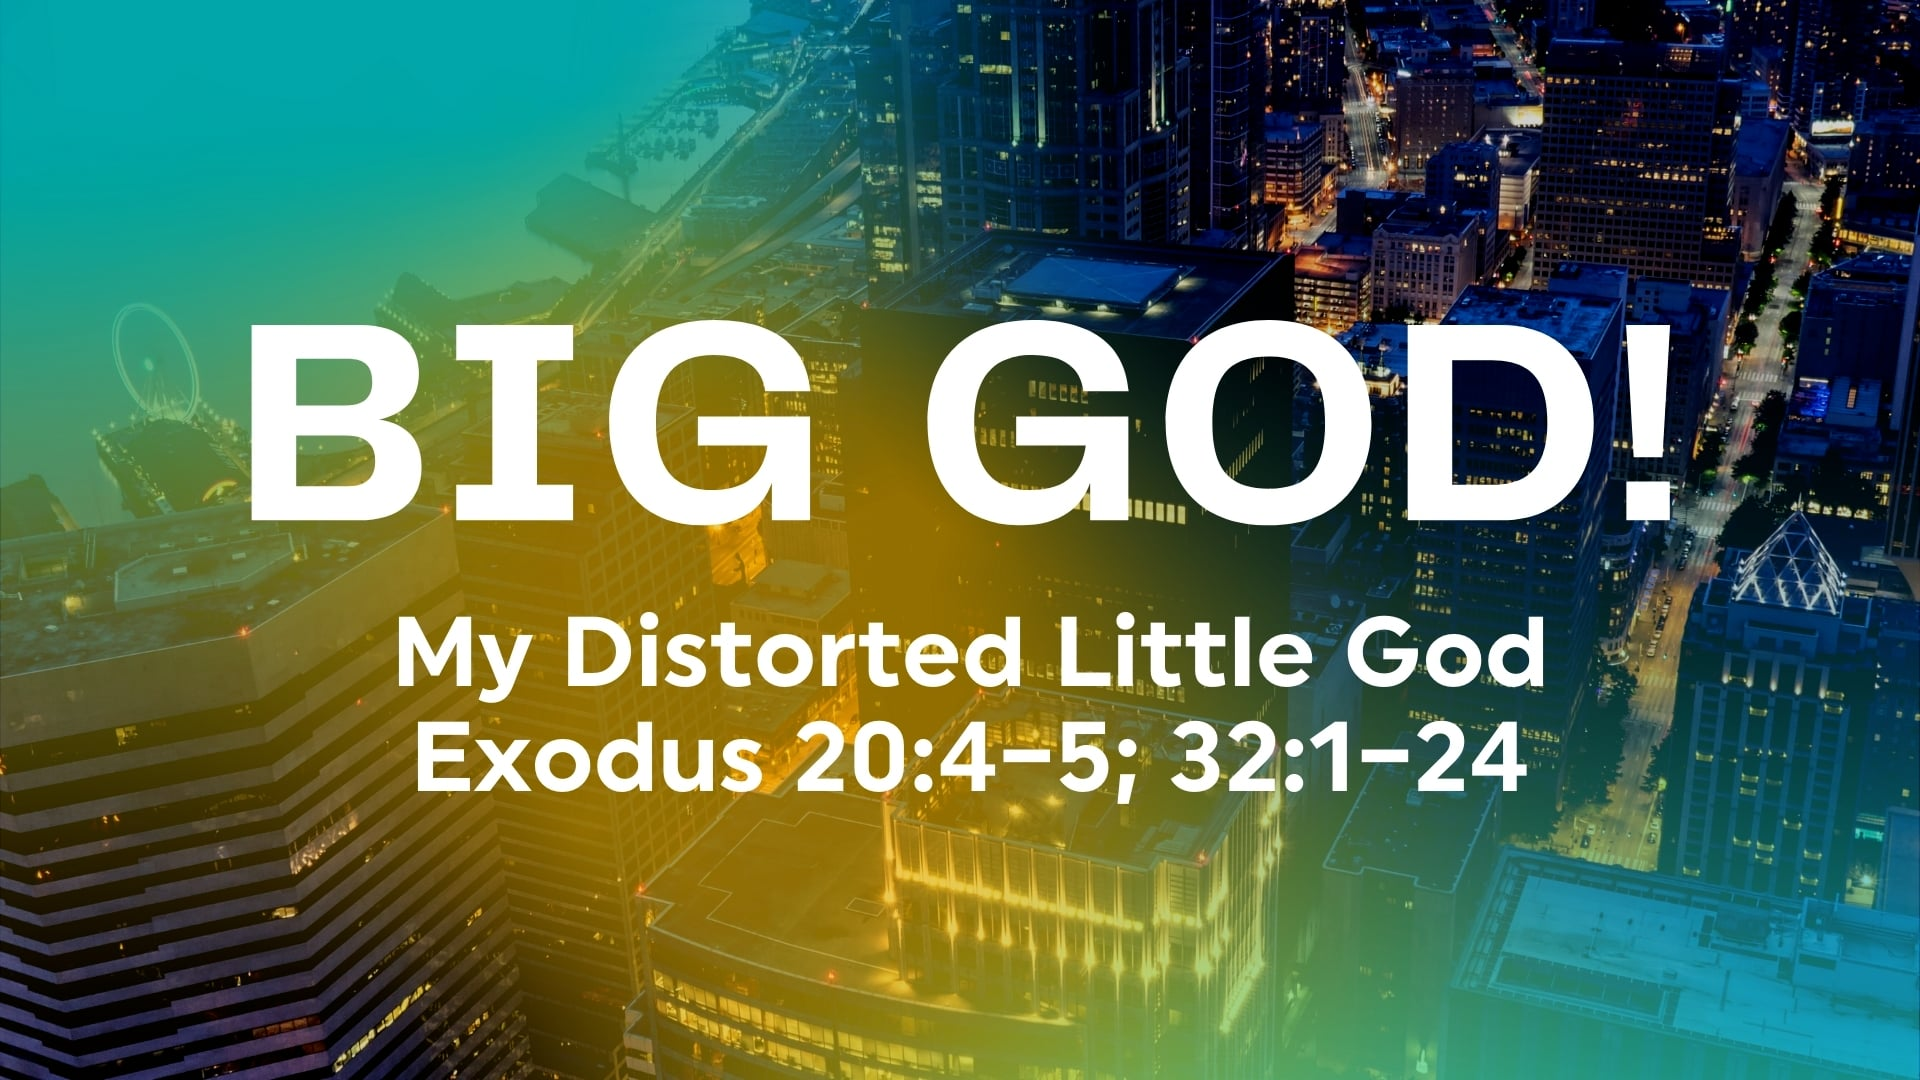 My Distorted Little God - October 17, 2021